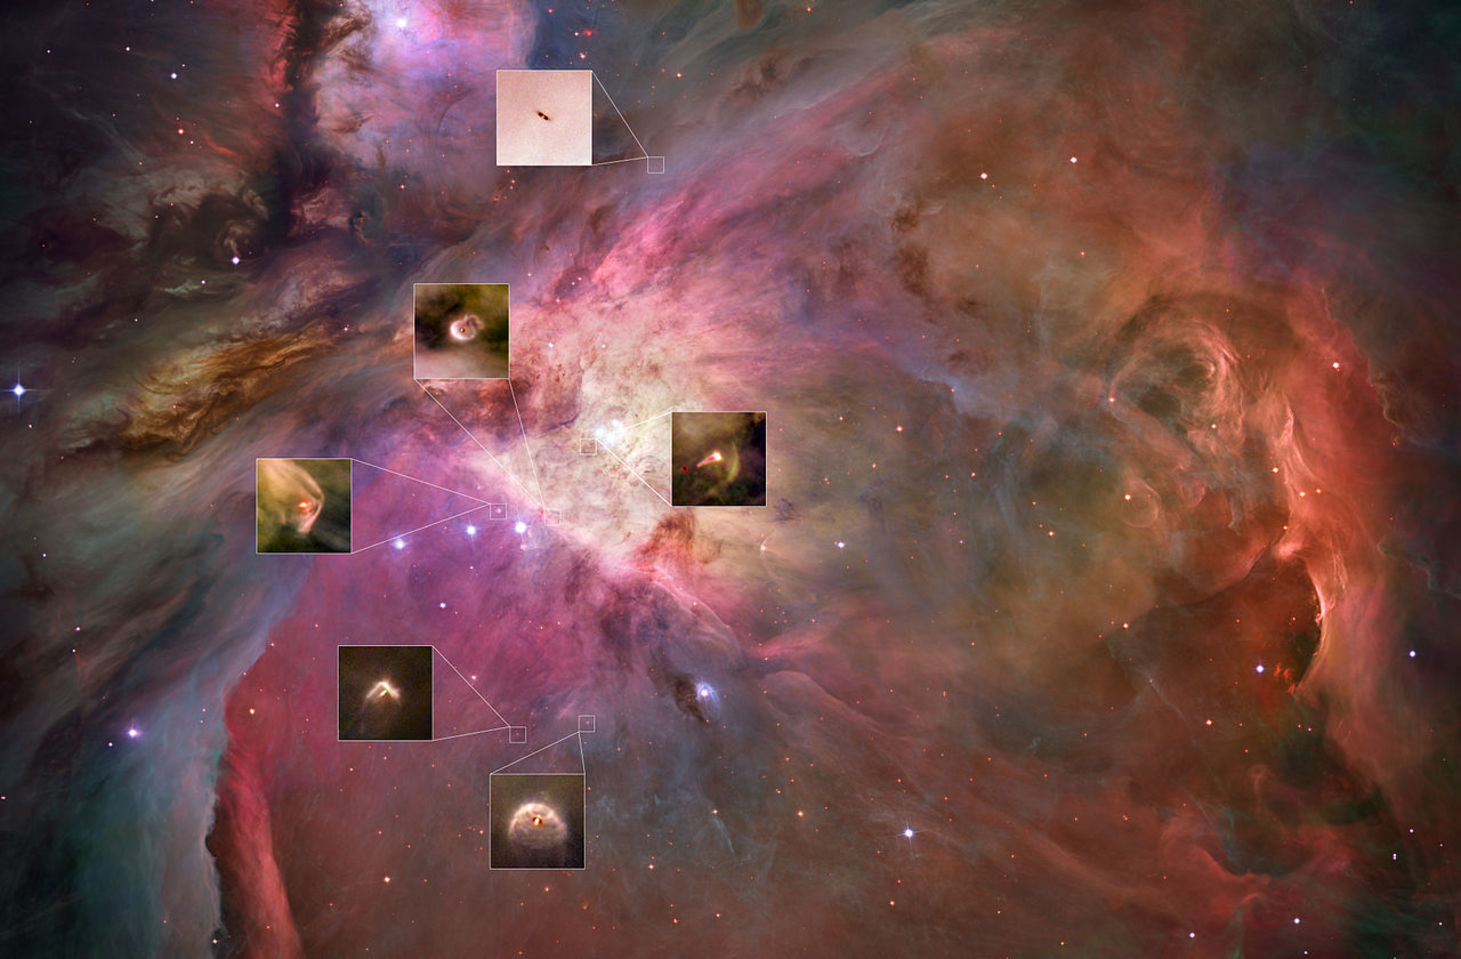 Within each of these circumstellar disks, seen against the backdrop of the Orion nebula, planets are being born. - Image Credit: NASA, ESA, M. Robberto (STSI/ESA), the HST Orion Treasury Project Team and L. Ricci (ESO)